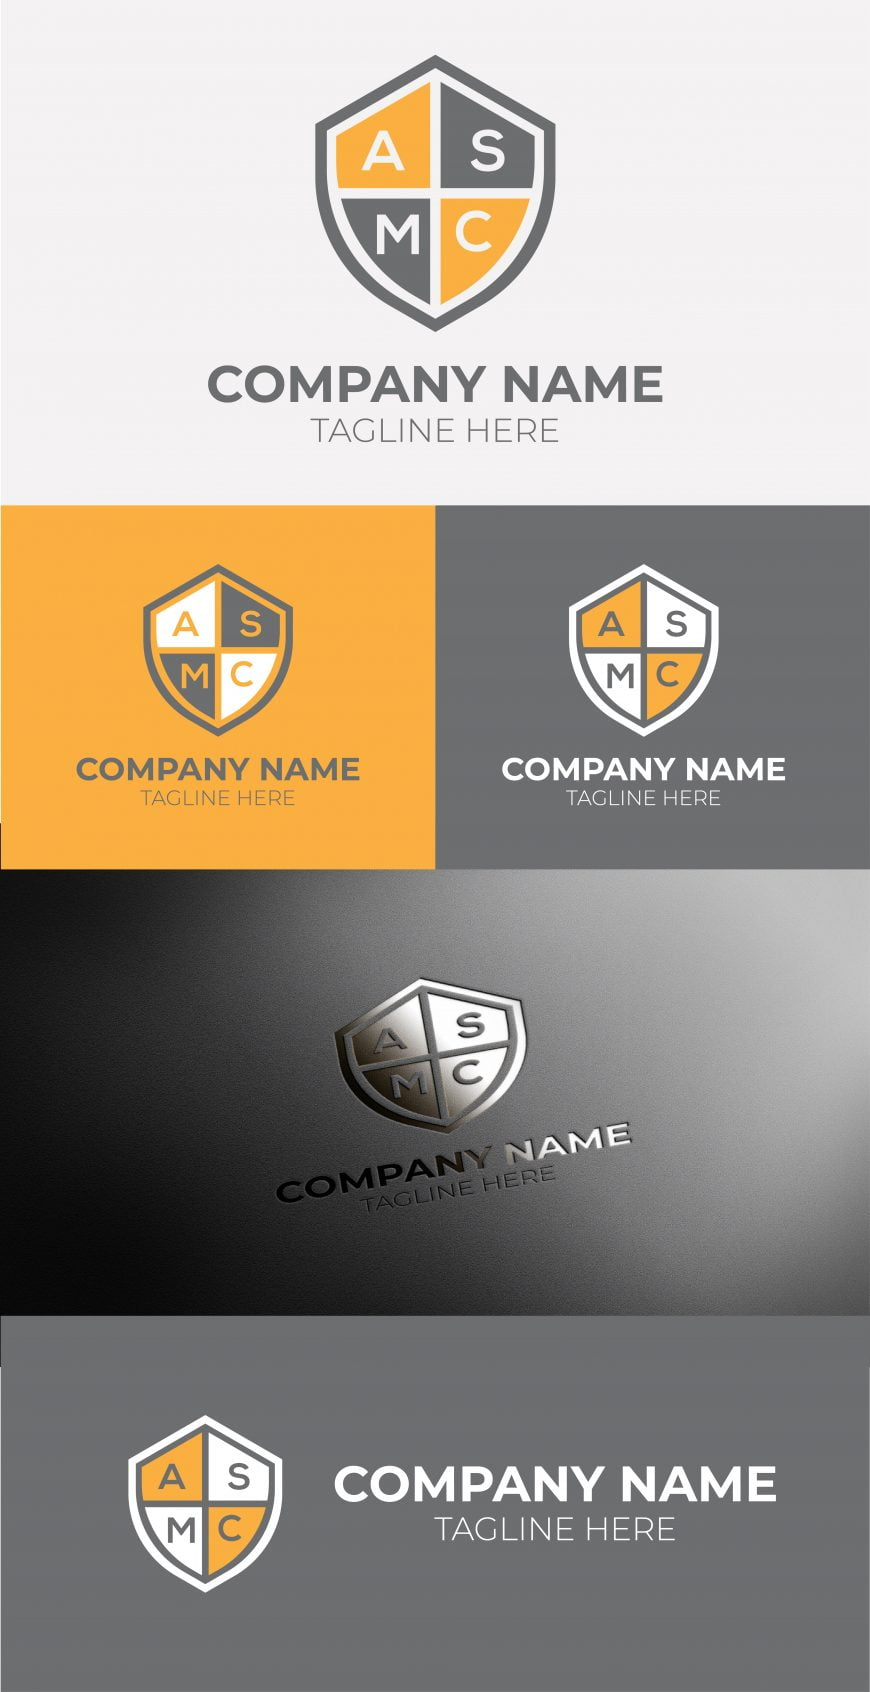 EDUCATION-LOGO-FREE-TEMPLATE-scaled